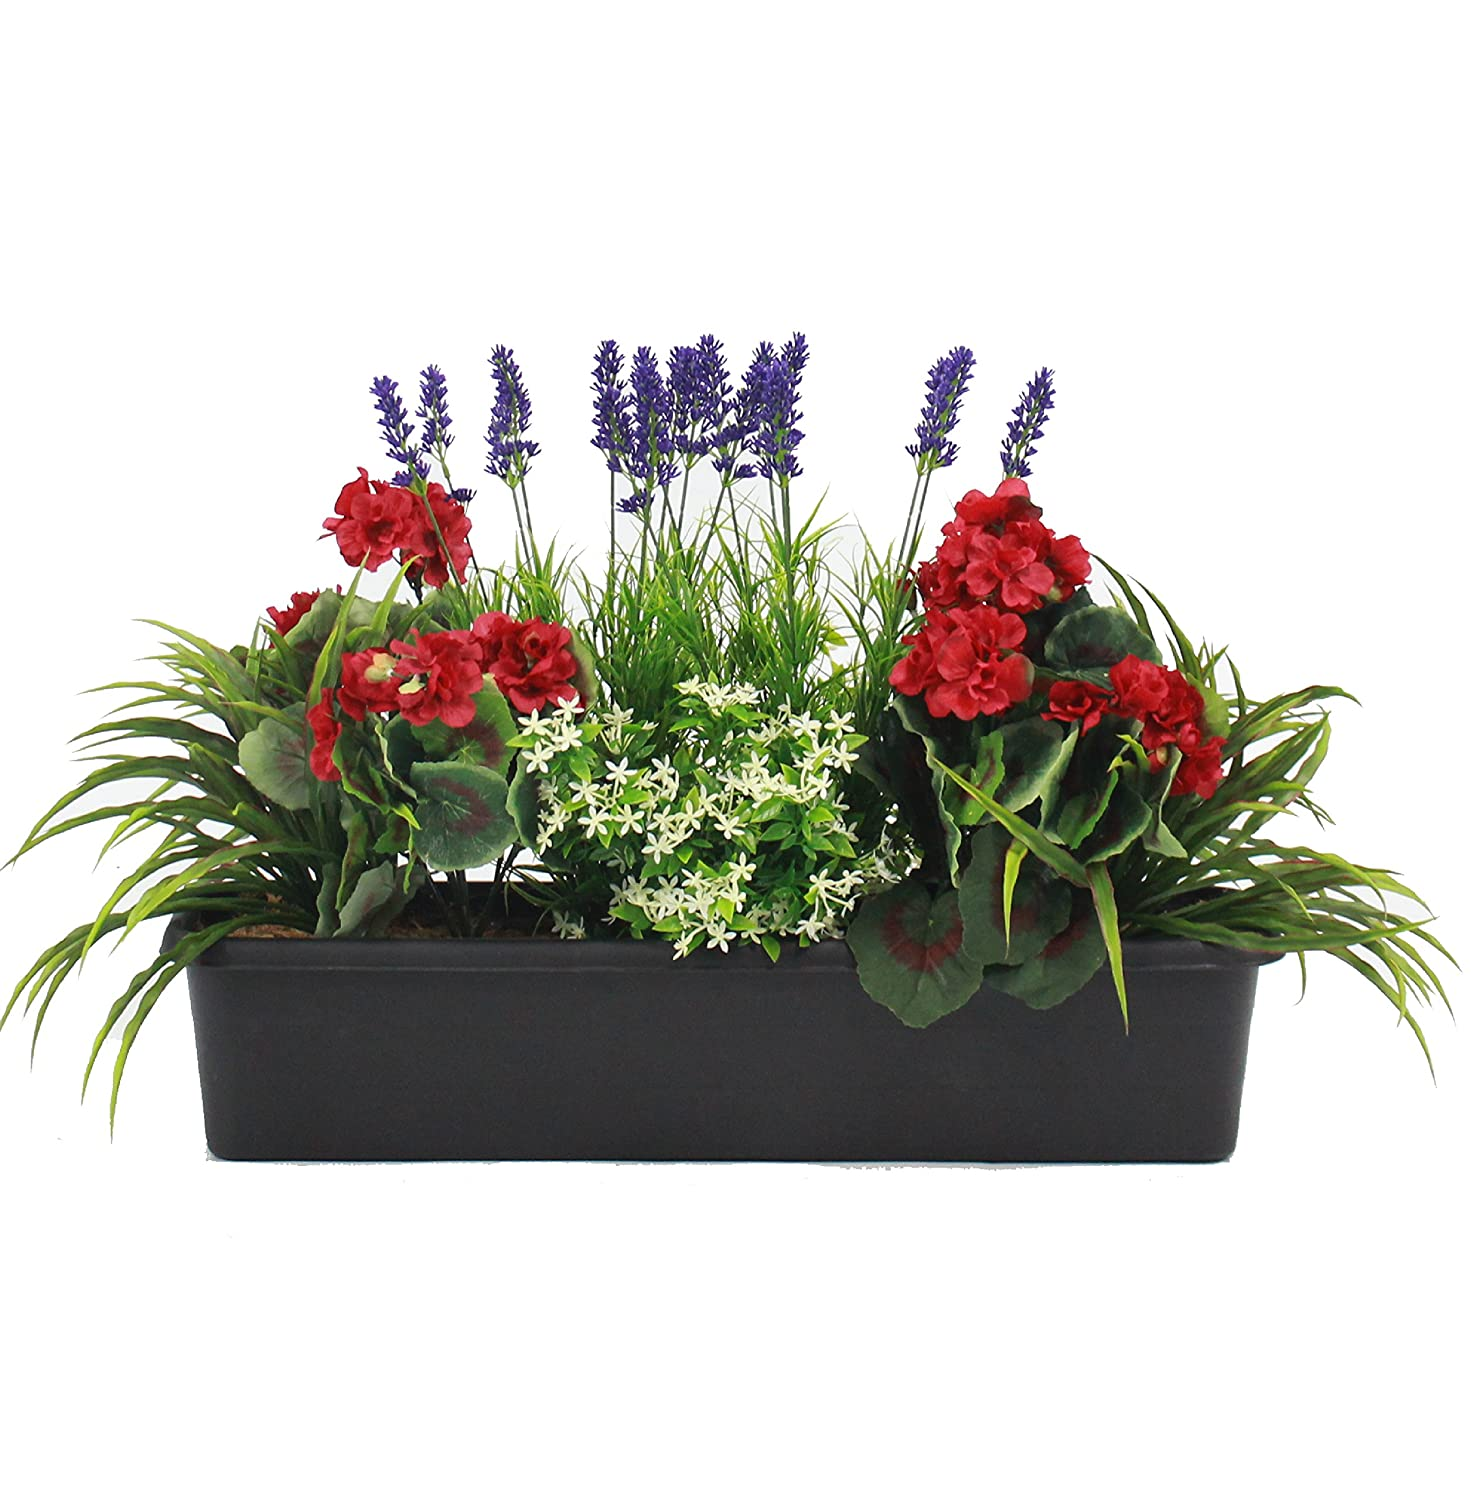 Artificial Mixed Flower Window Box Trough Container with Yucca, Geraniums, Starflower and Lavender - Outdoor and Indoor Use - Colourful and Realistic (Red) Blooming Artificial